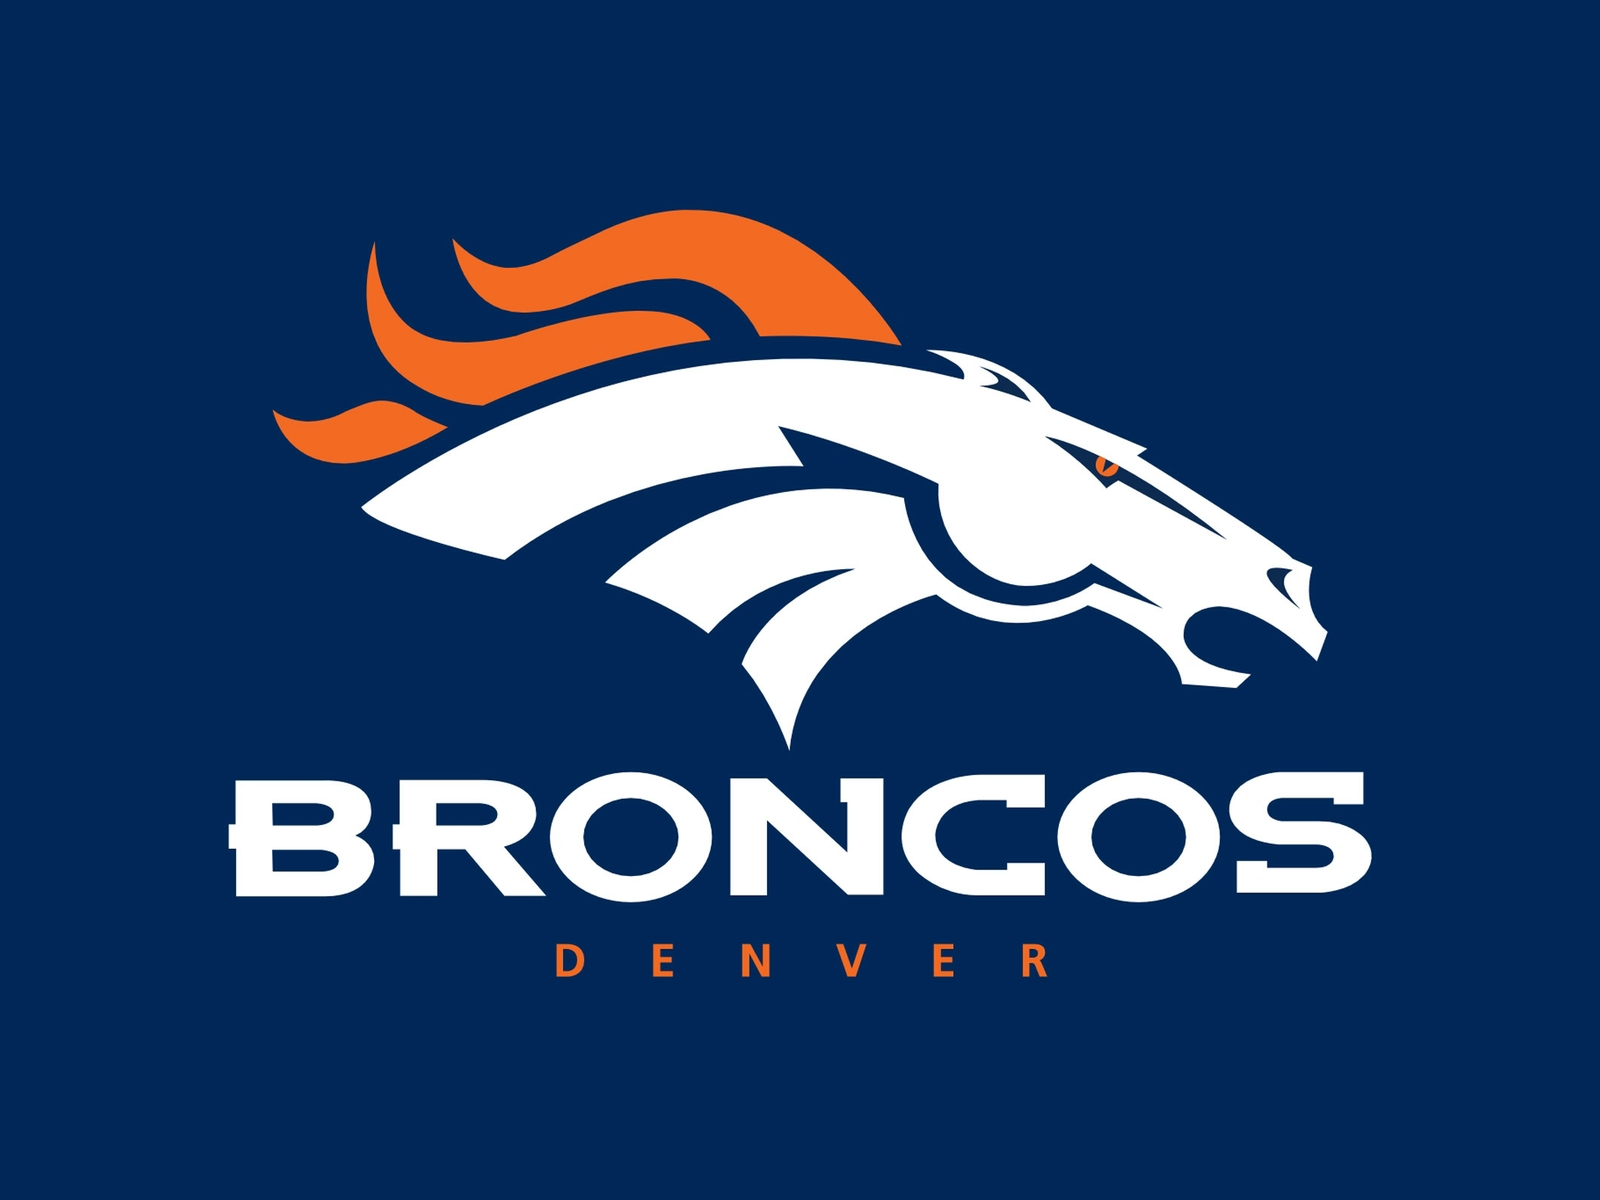 NFL's Denver Broncos to enter in an agreement with the IKON pass for three years.